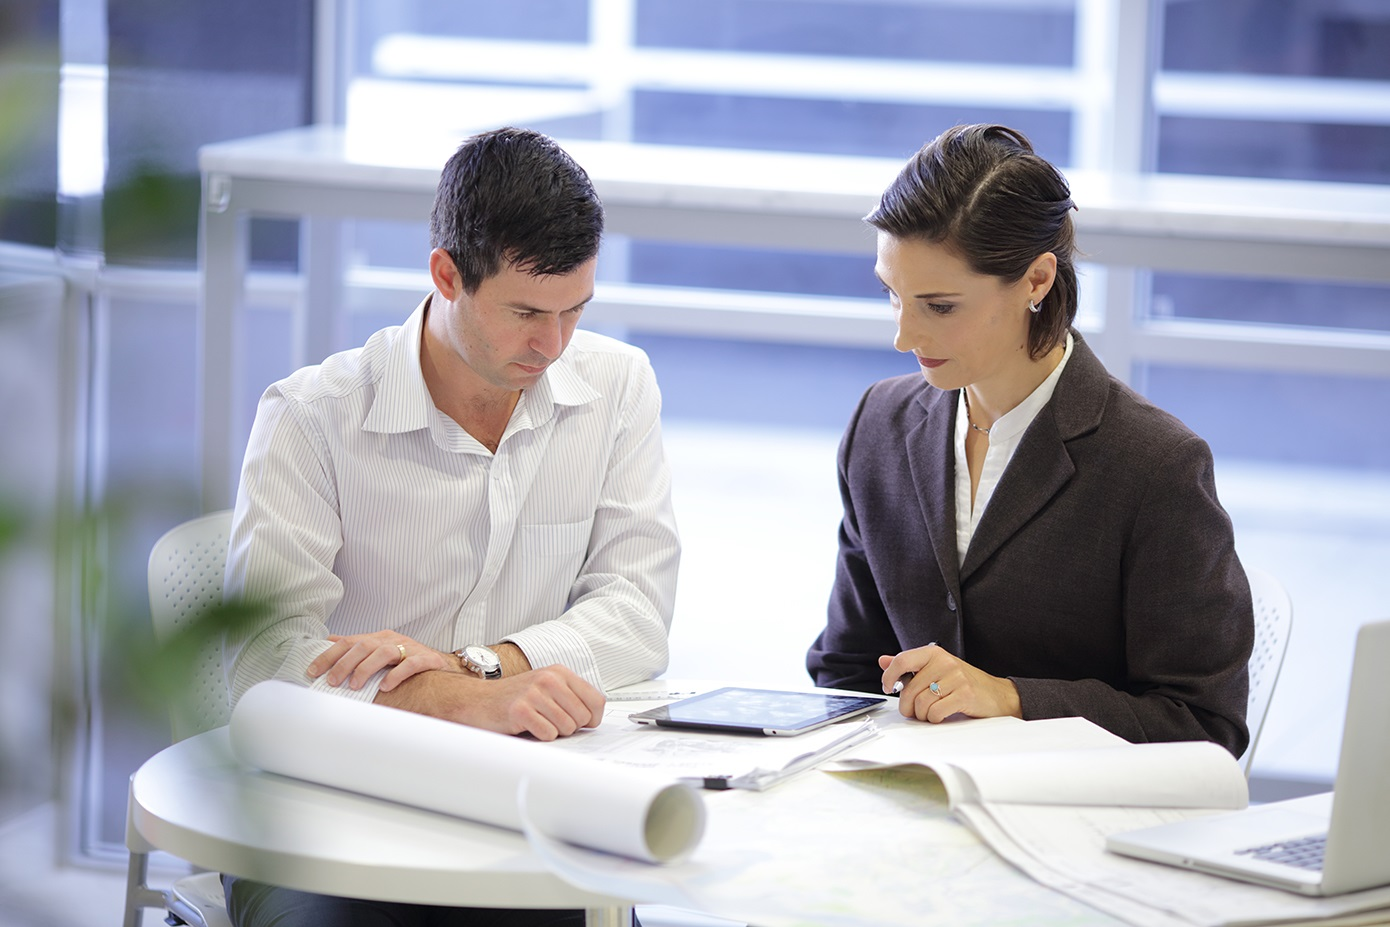 Man and lady looking at papers appealing a decision